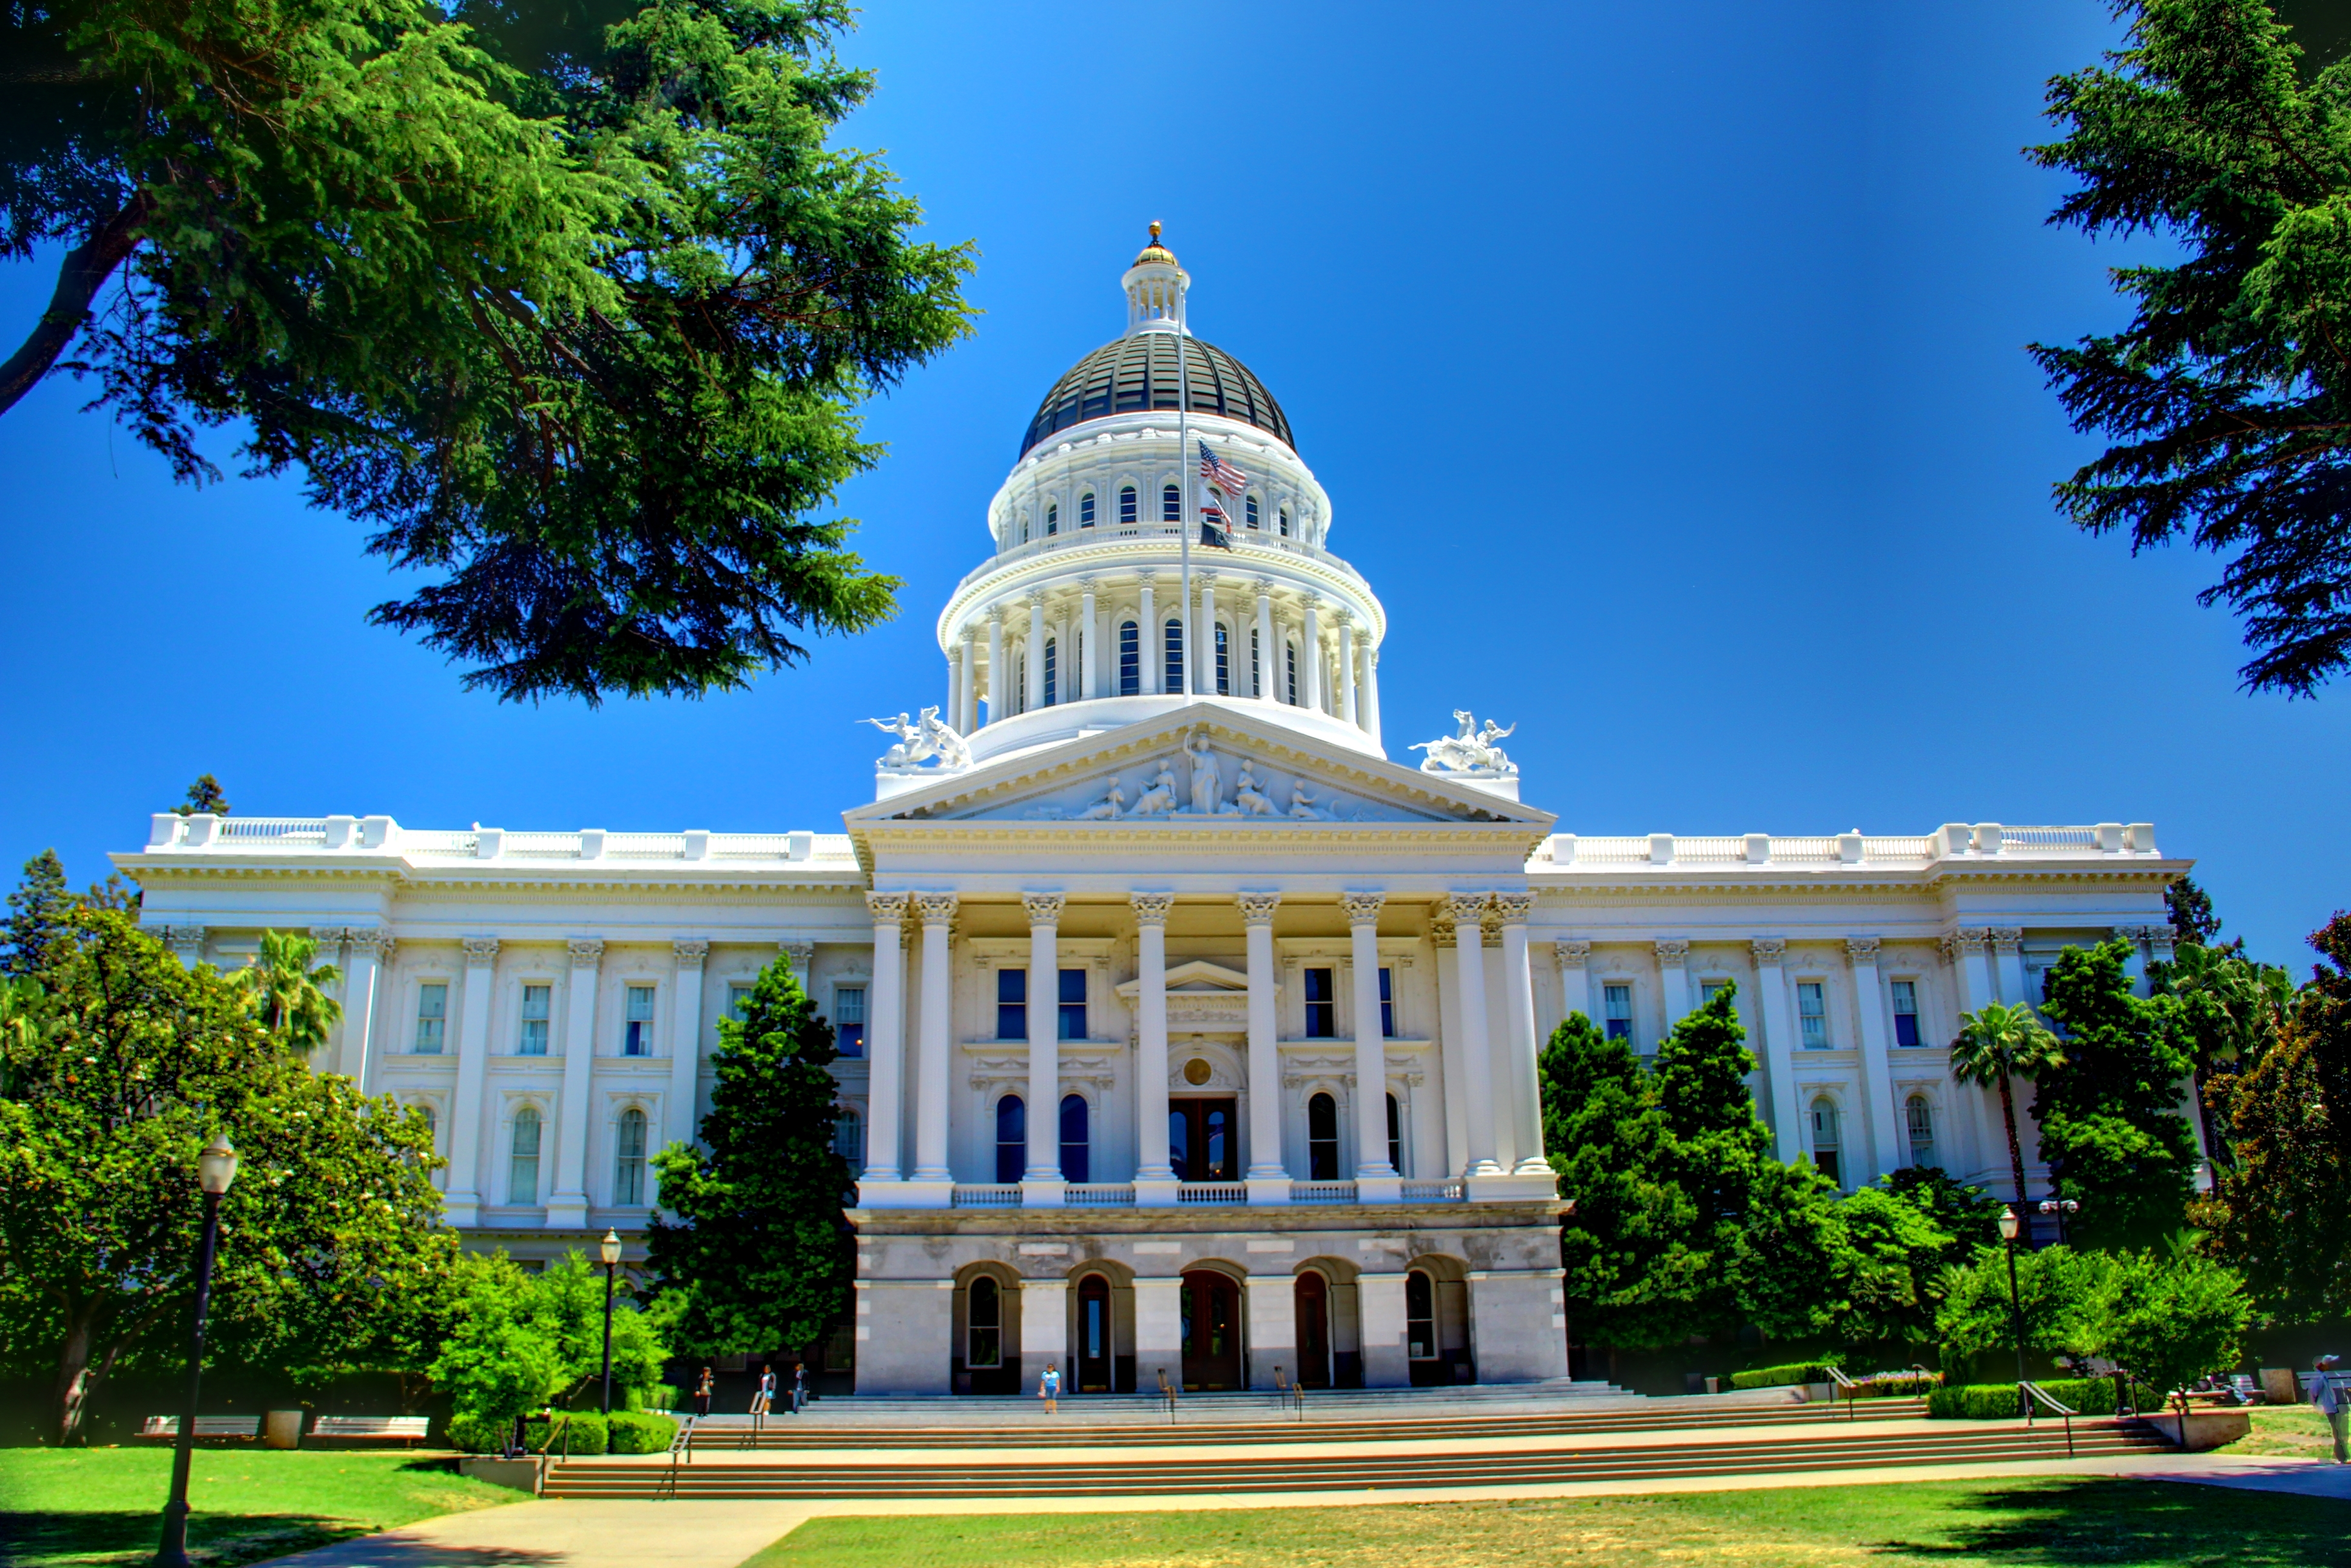 10 new laws that will affect the rental housing industry next year